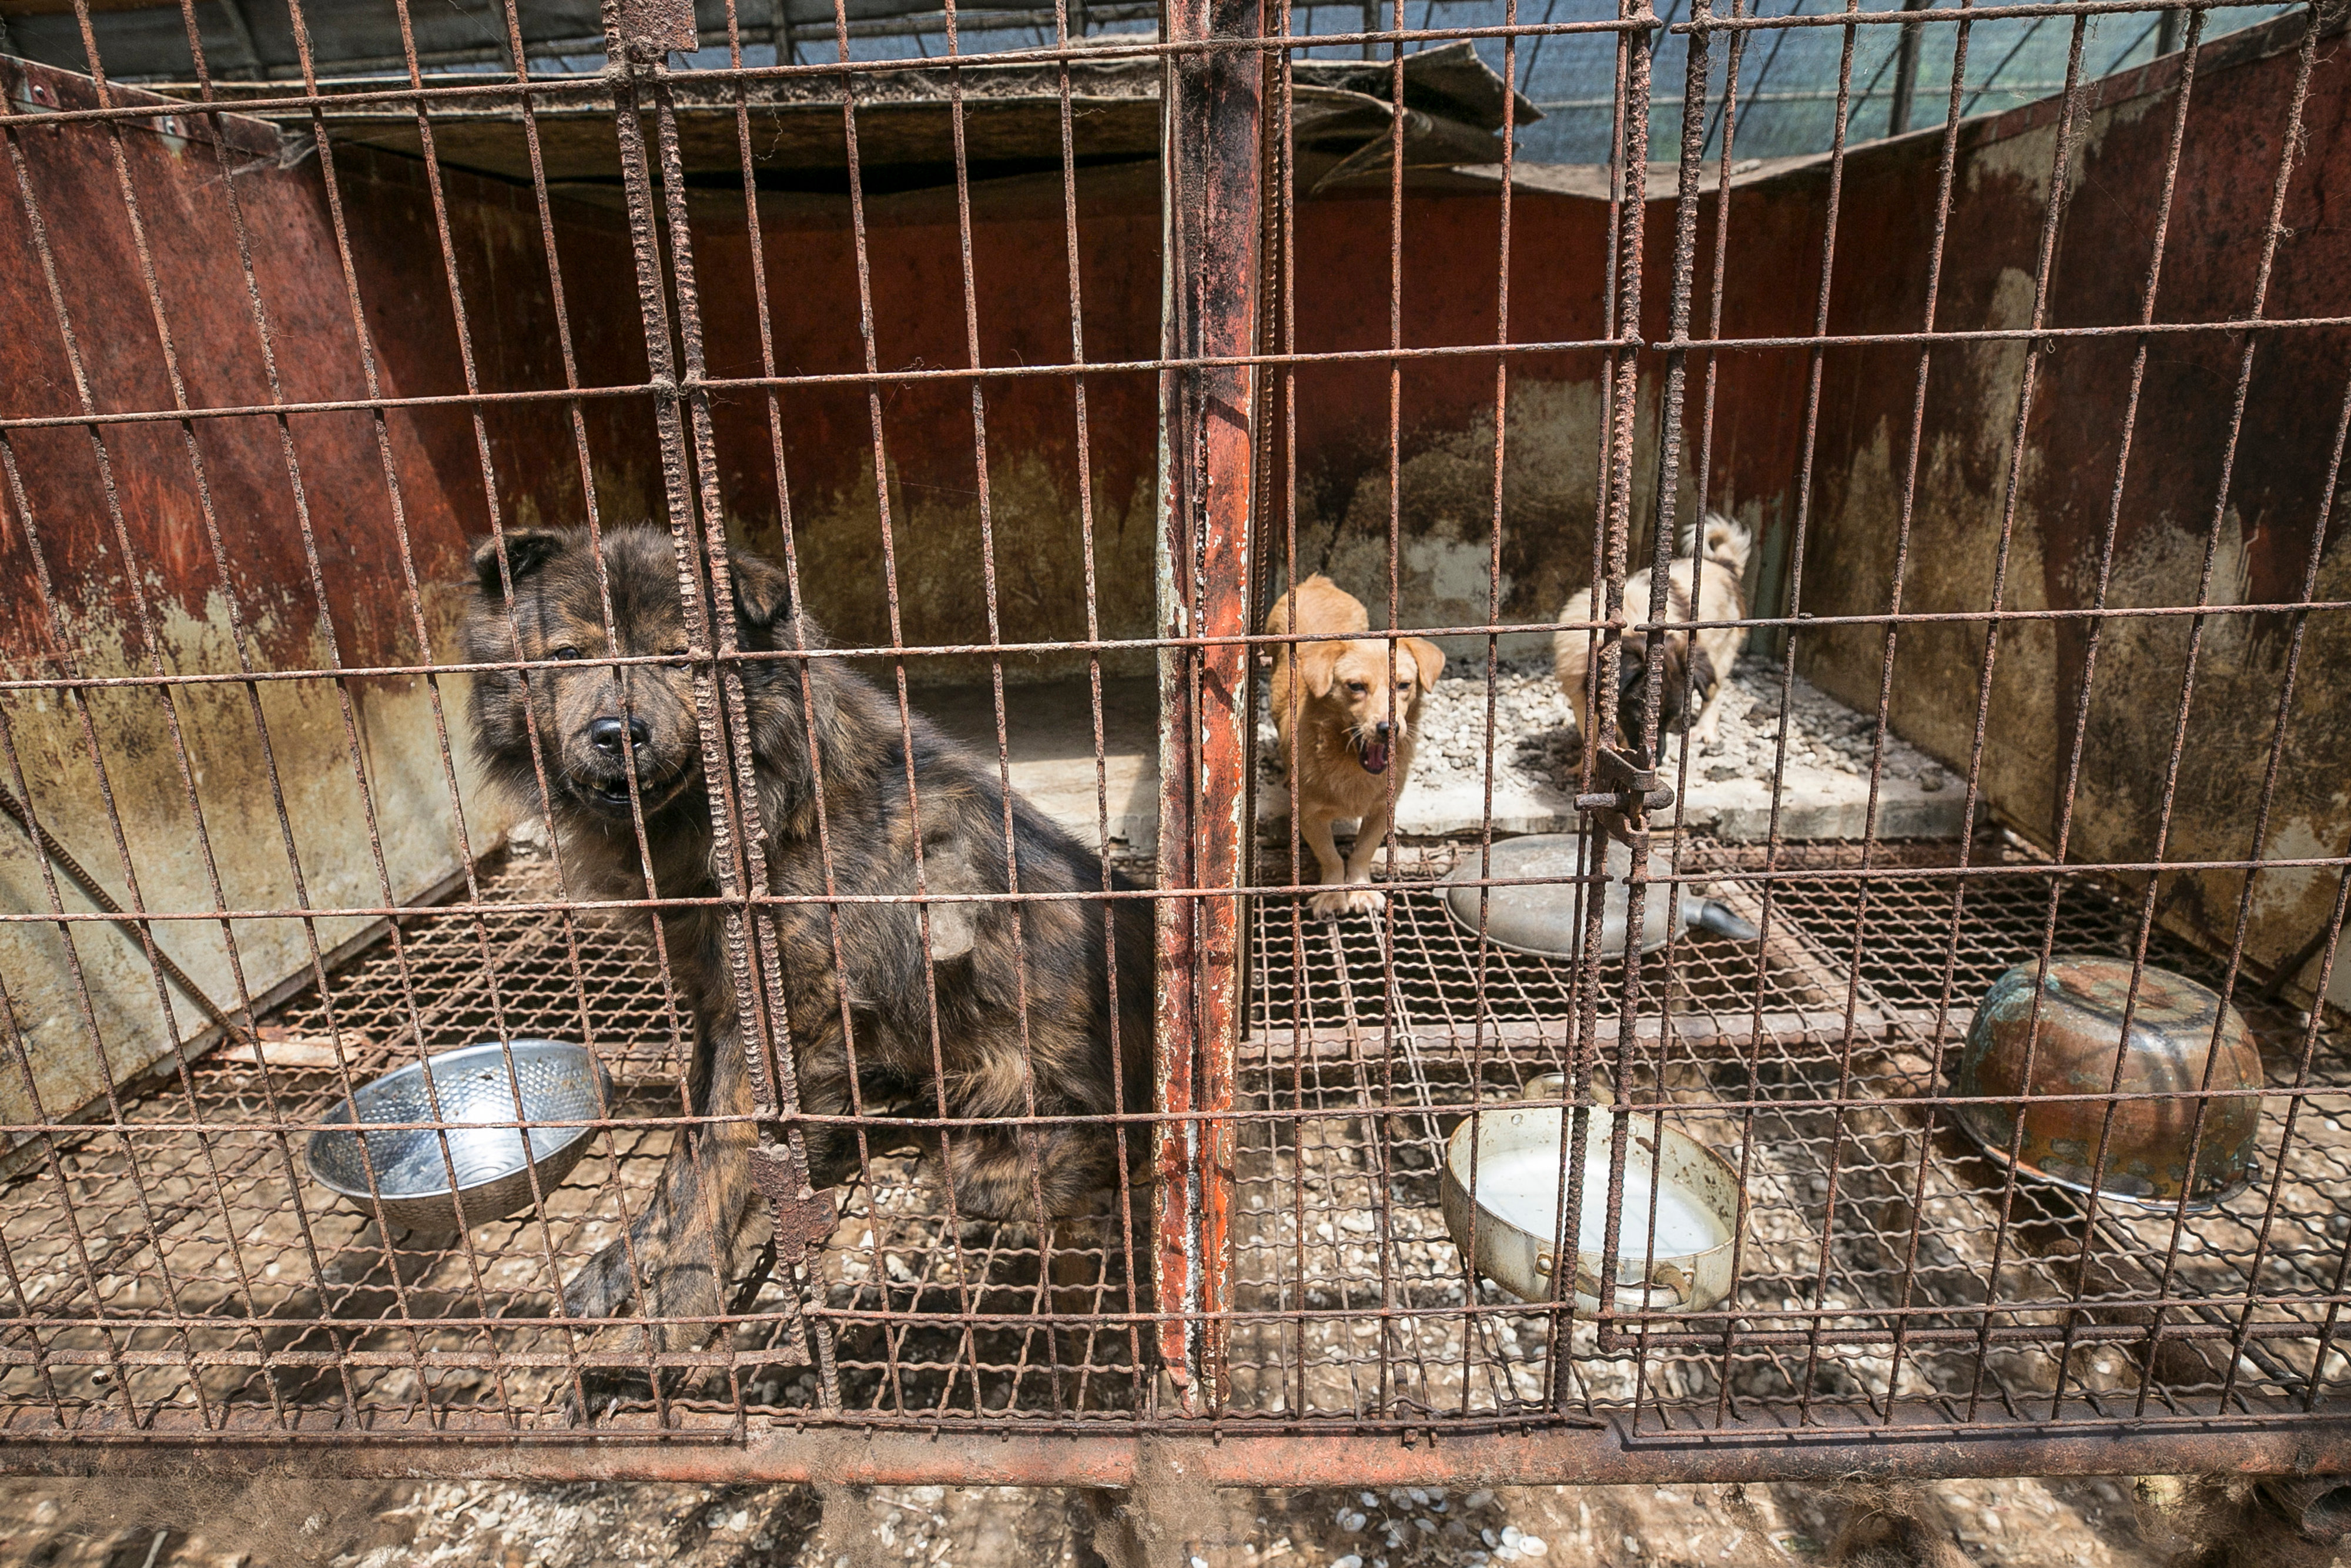 South Korea Dog Meat Farm 13